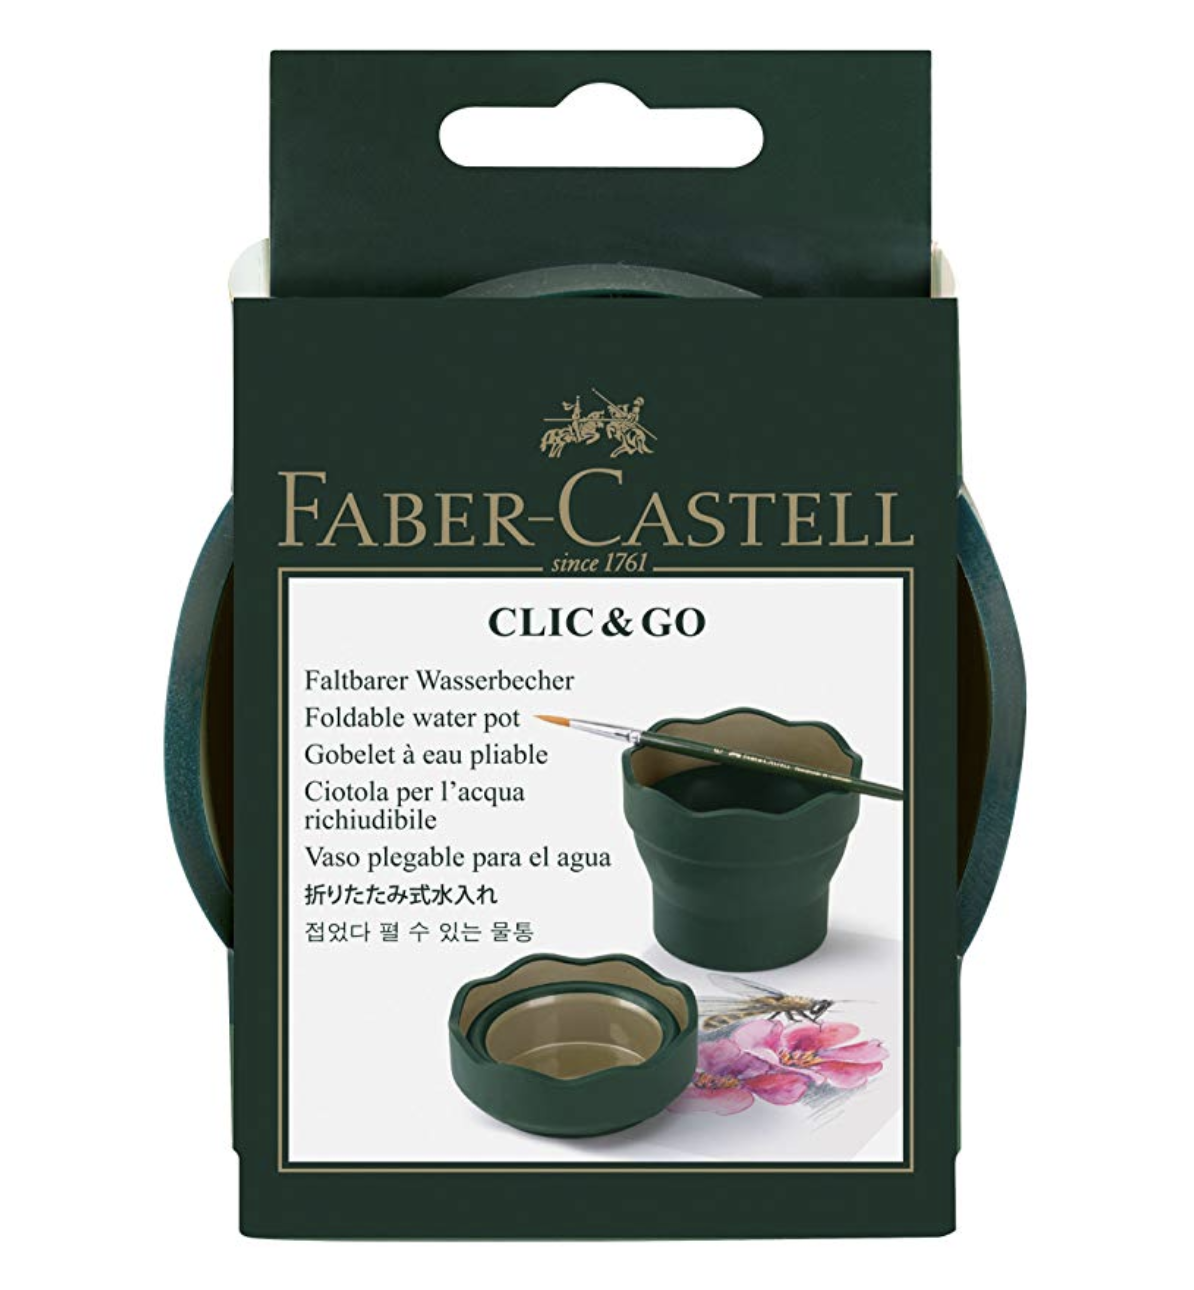 Faber Castell Clic & Go Portable Water Cup with Brush Holder, $5.50